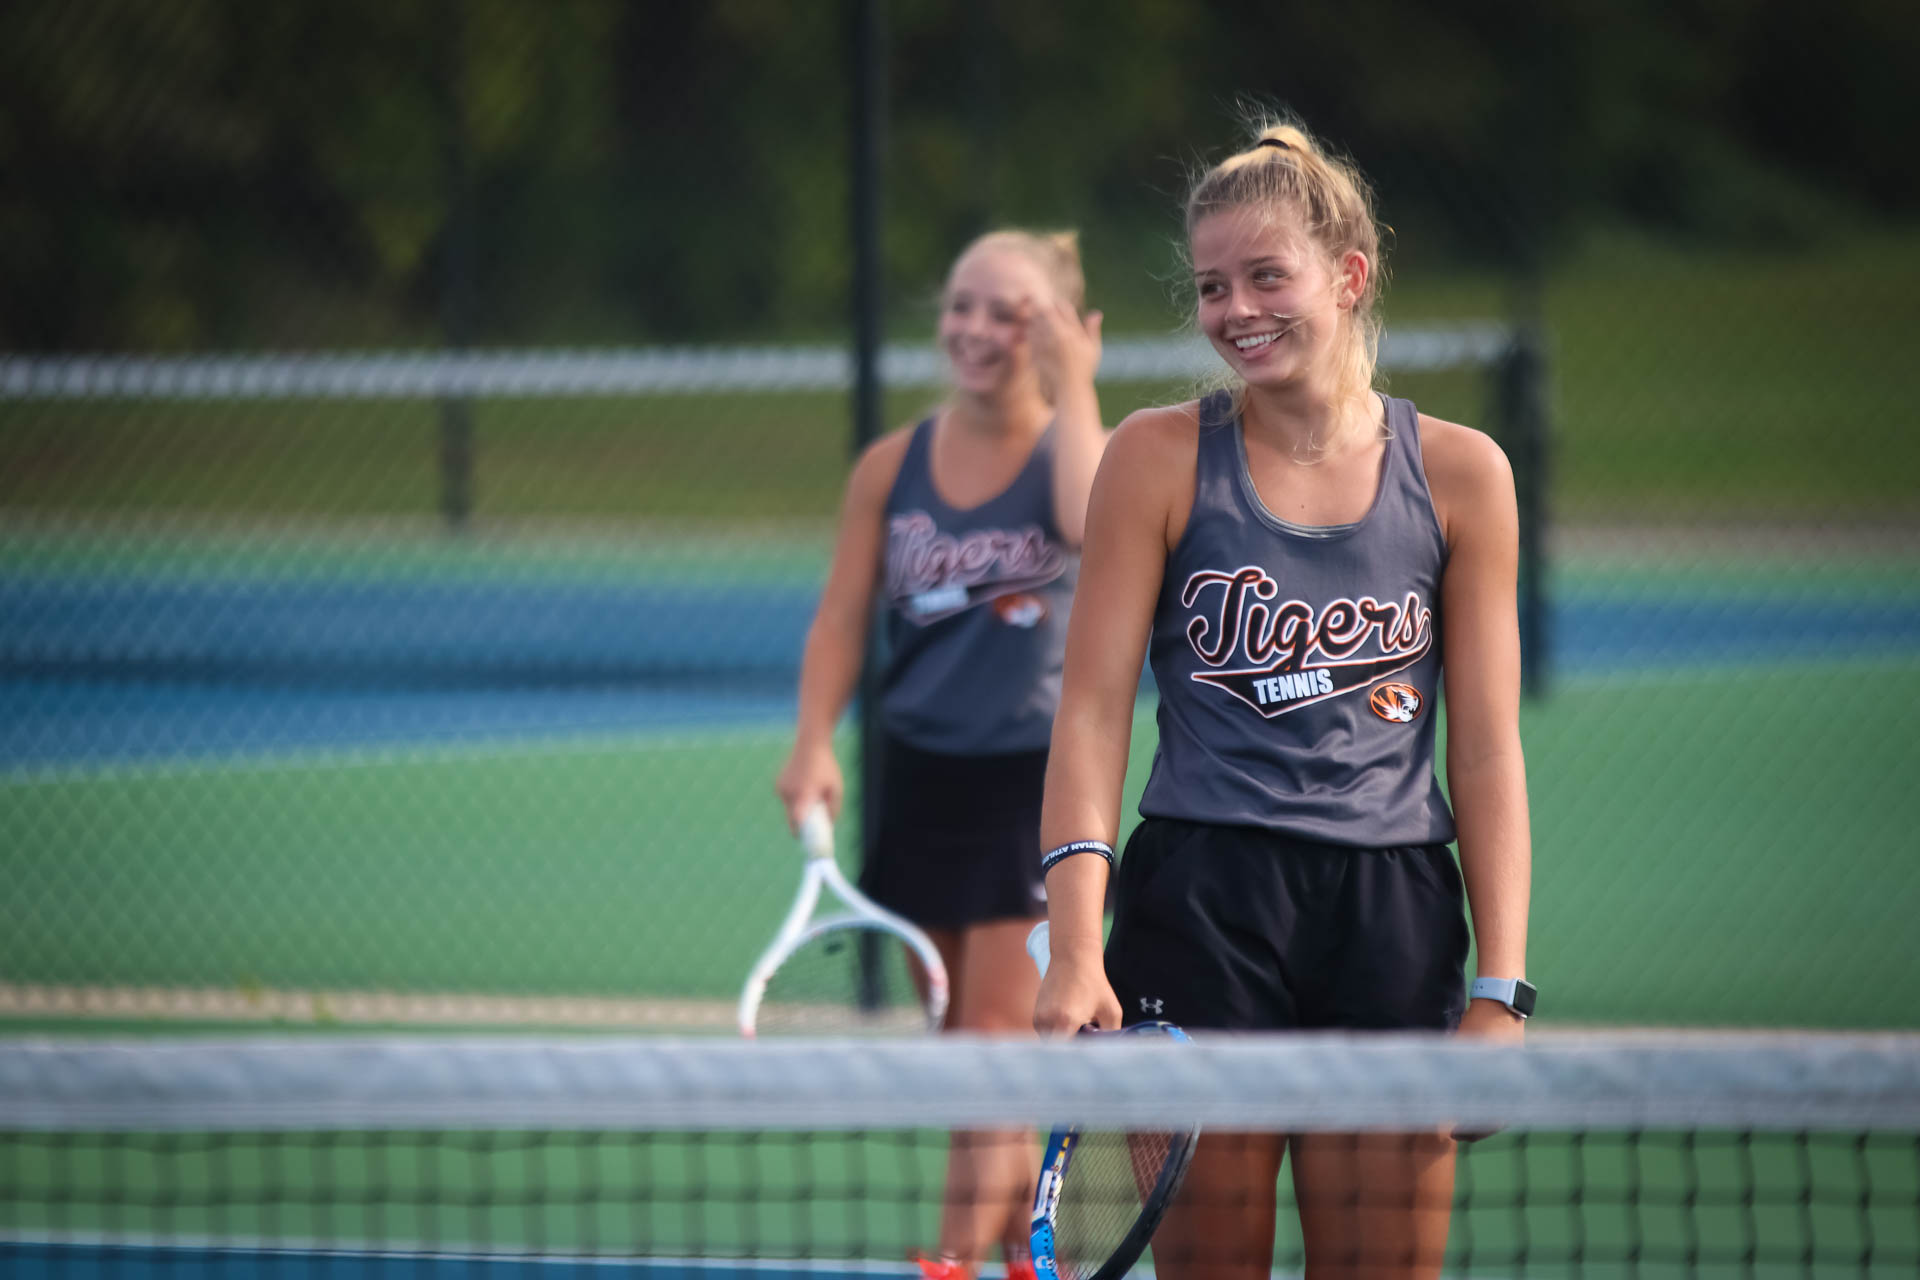 Lady Tigers To Play For District Tennis Title